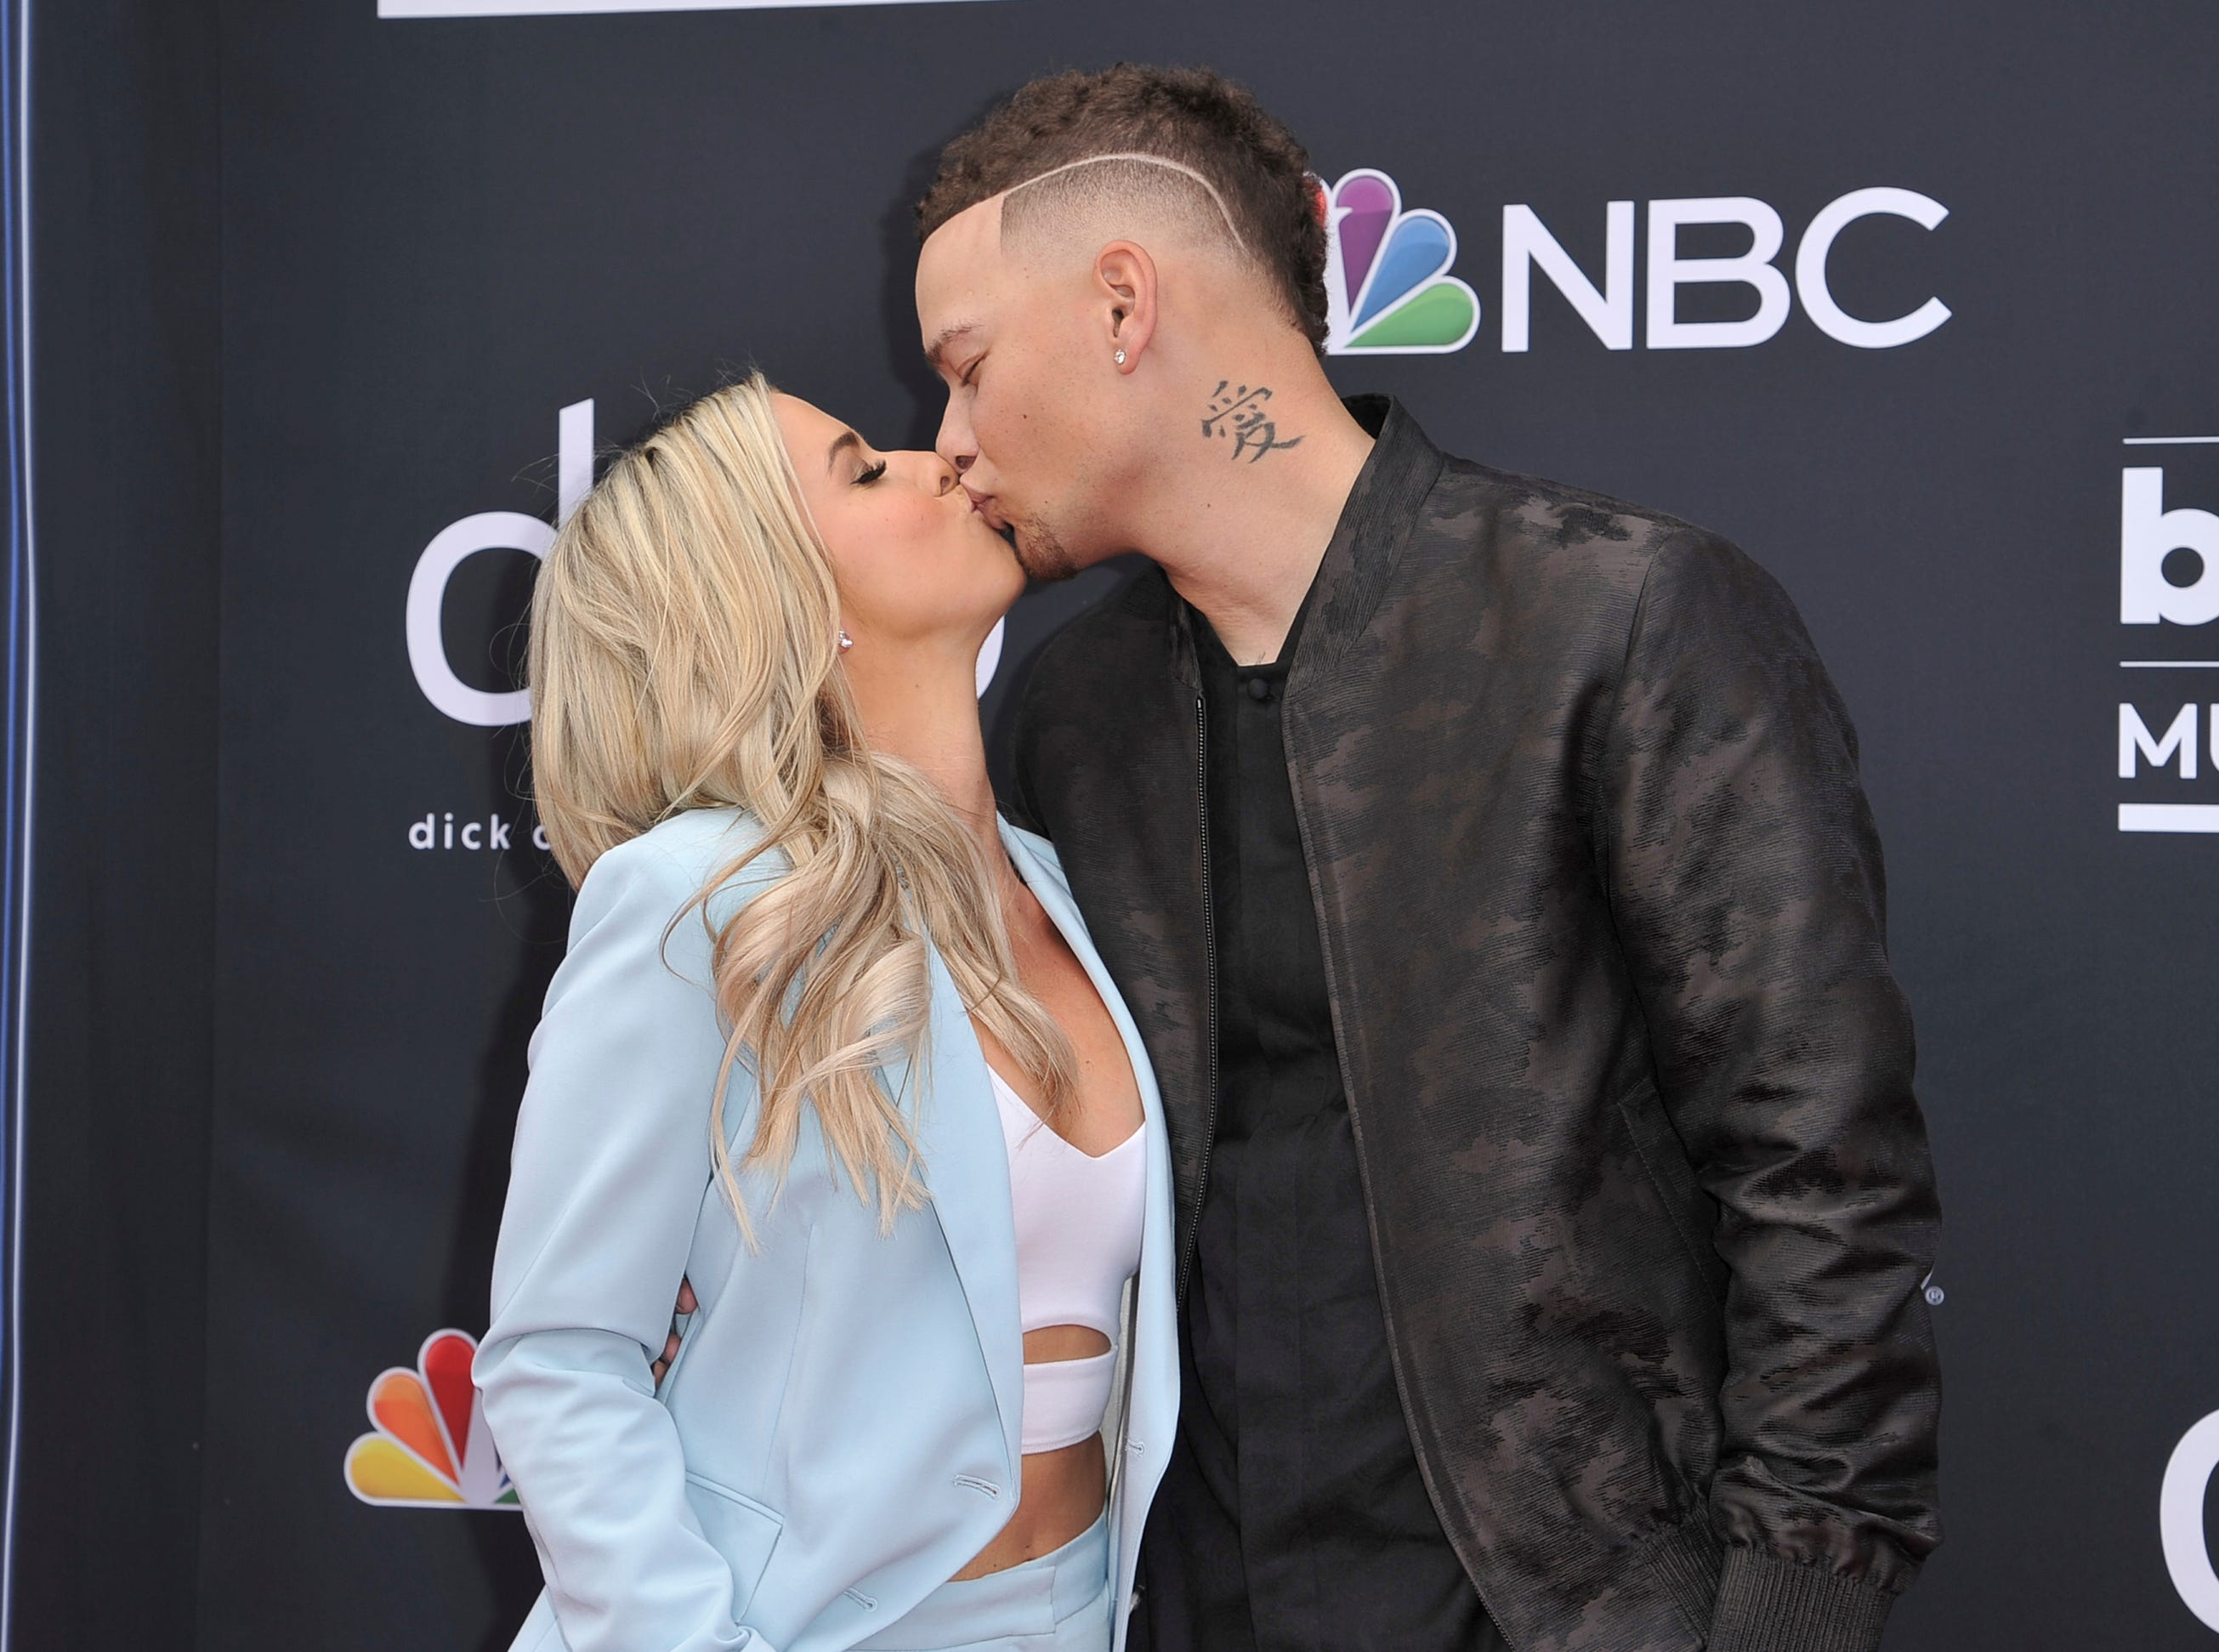 Katelyn Jae, left, and Kane Brown kiss as they arrive at the Billboard Music Awards on Wednesday, May 1, 2019, at the MGM Grand Garden Arena in Las Vegas.